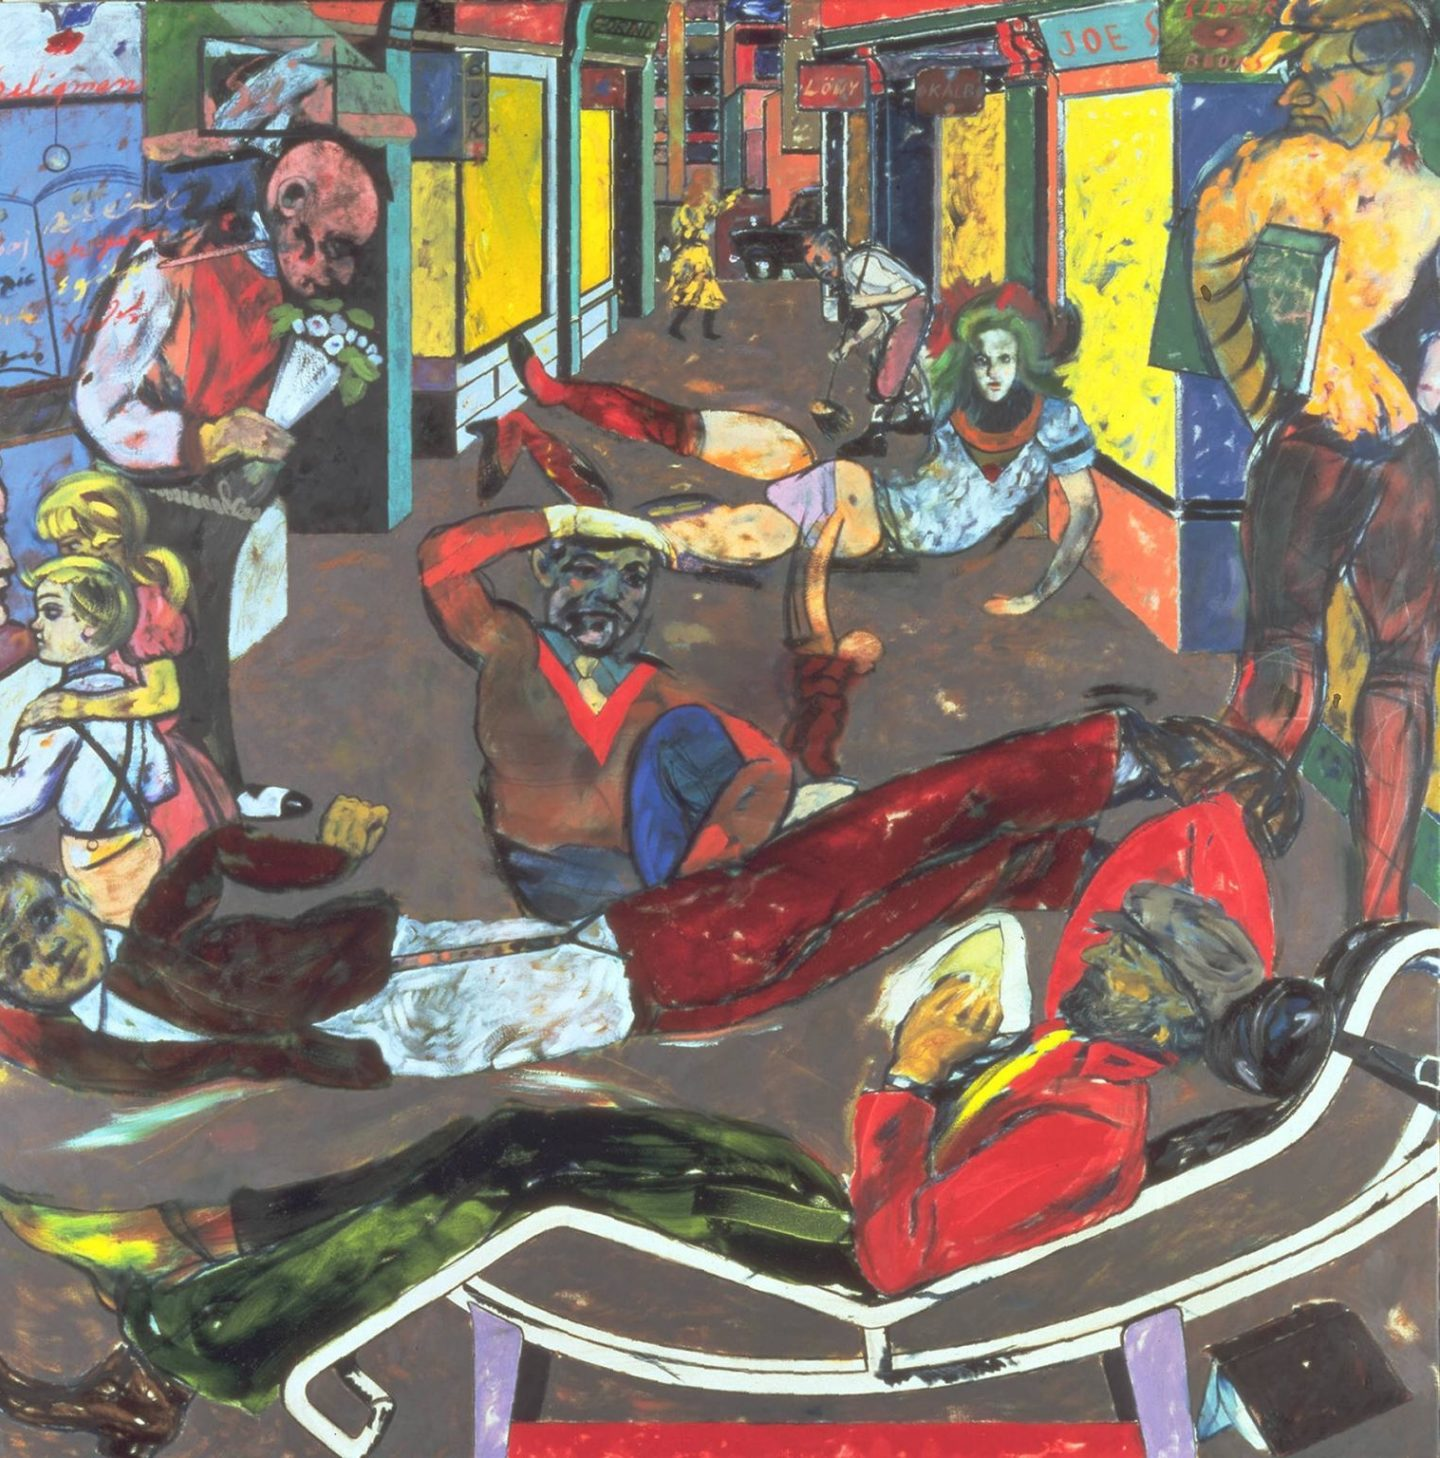 "<p>Diasporist painter <span class=""caps"">R.B.</span> Kitaj&#8217;s 1984 painting &#8220;Cecil Court, London <span class=""caps"">W.C.</span>2. (The Refugees)&#8221; depicts diasporic Yiddish life. <a href=""http://www.tate.org.uk/art/artworks/kitaj-cecil-court-london-w-c-2-the-refugees-t04115"">Tate Museum,&nbsp;London</a>.</p>"